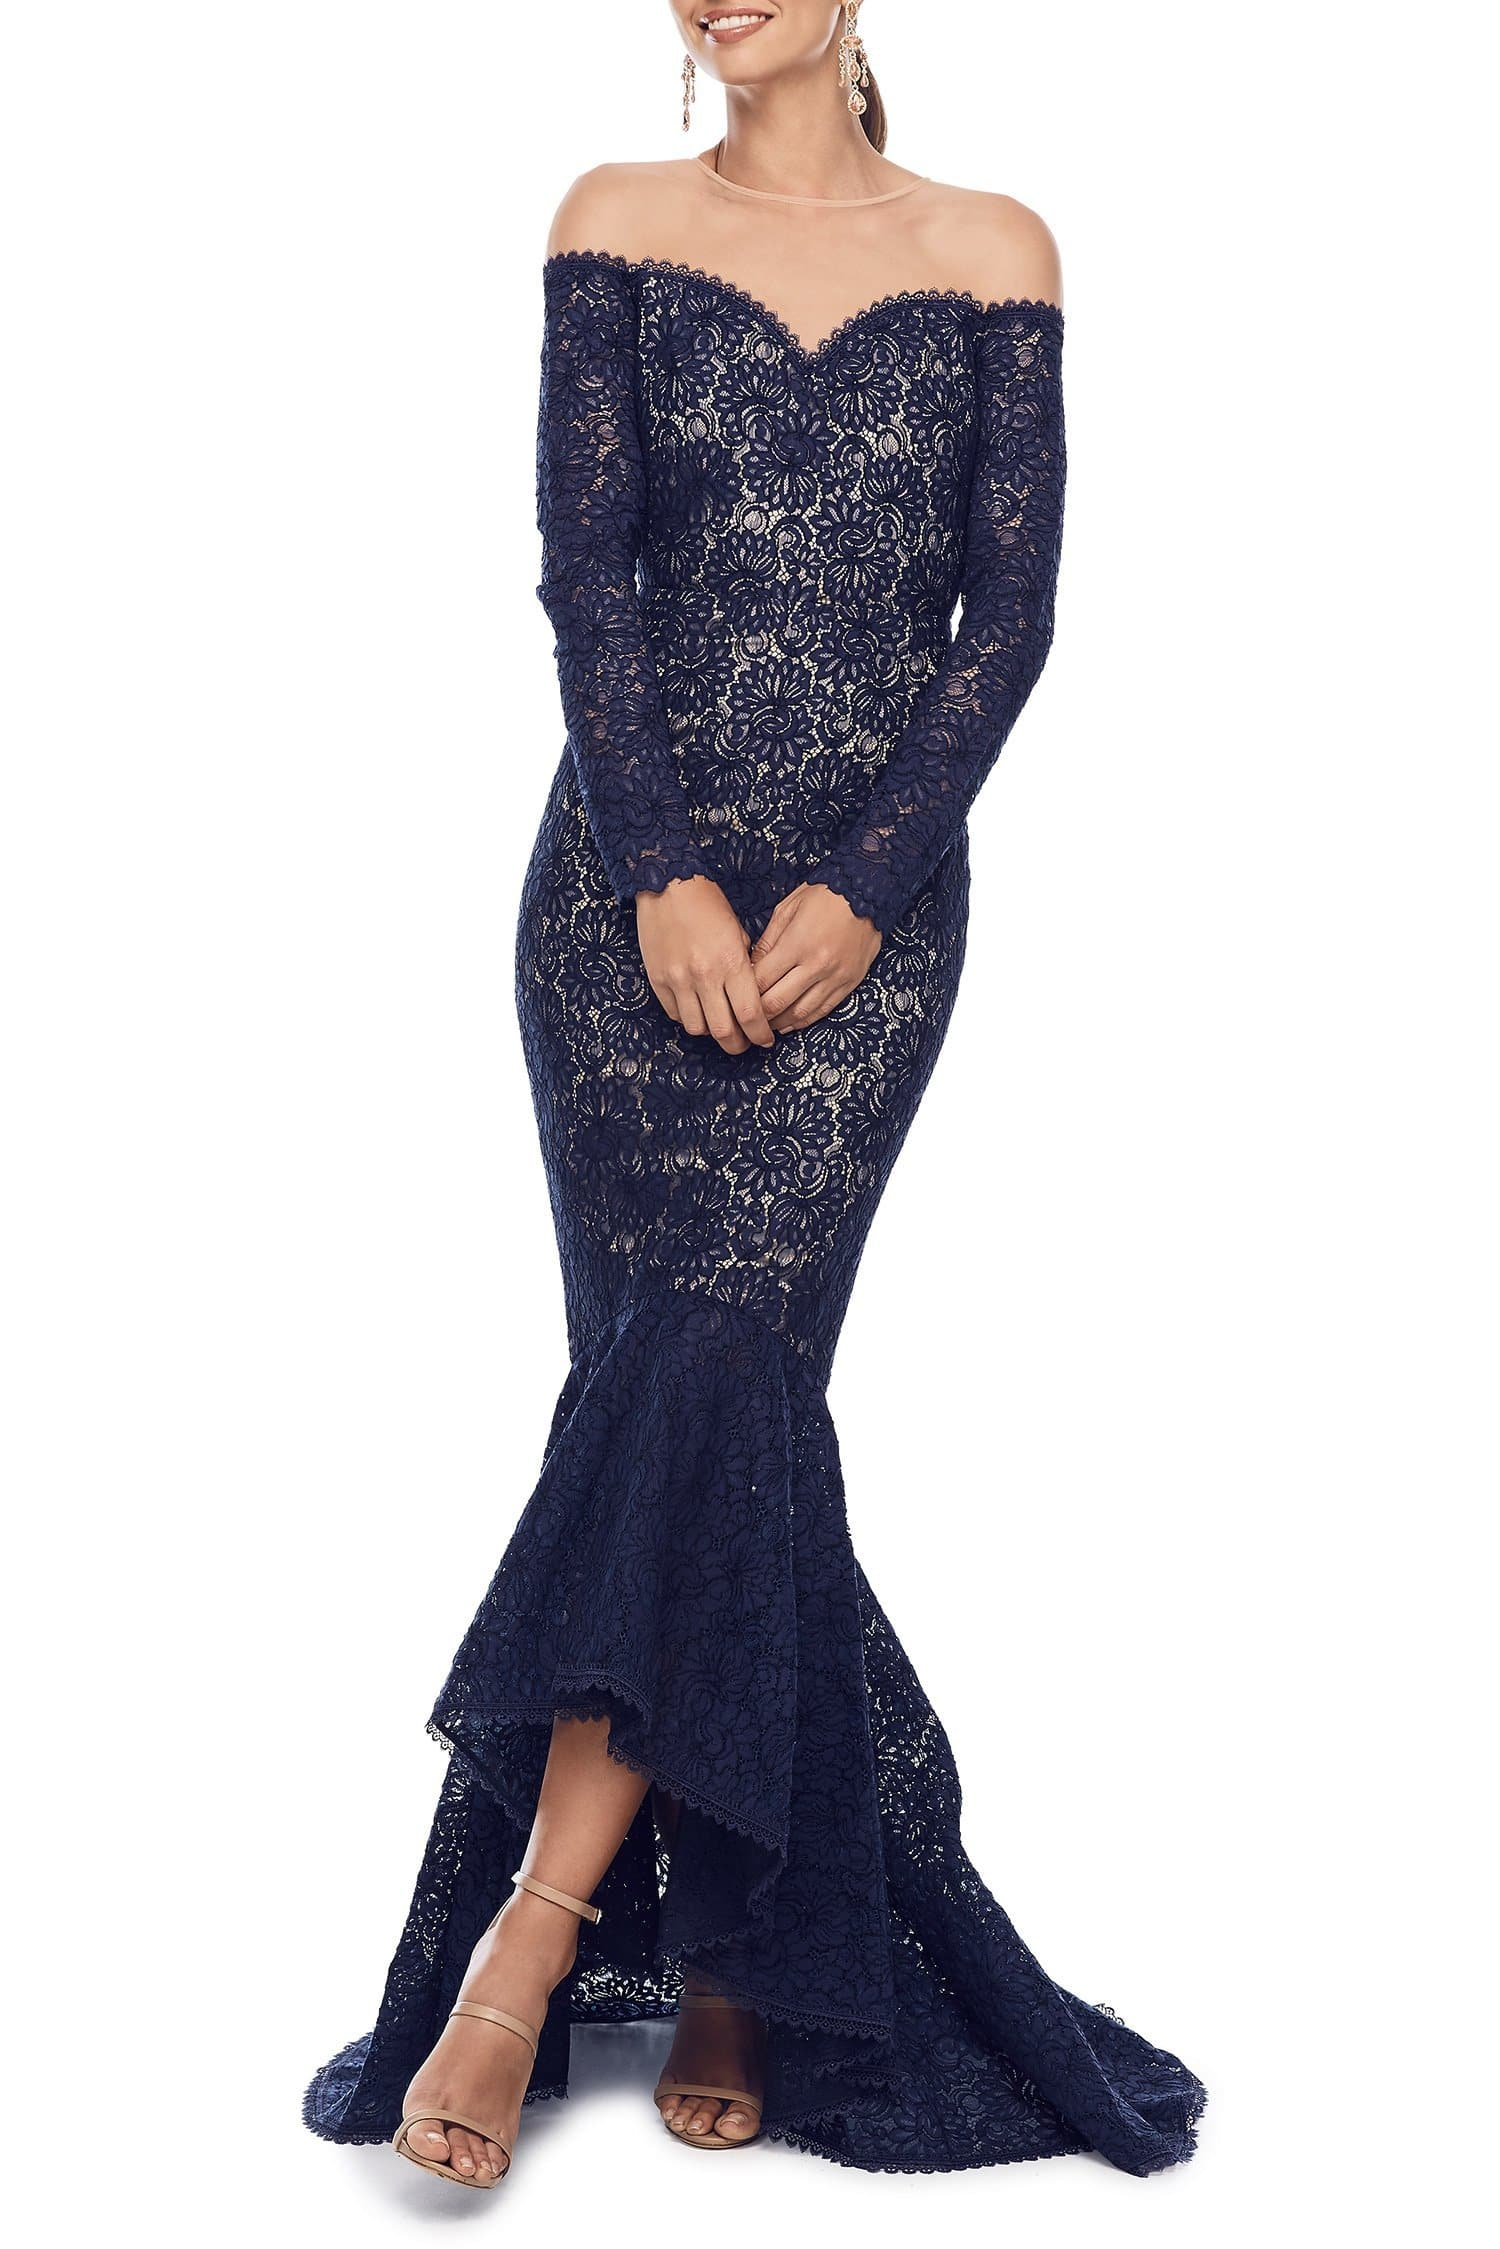 Margarita - Navy Lace Off-Shoulder Ling Sleeve Gown with Mermaid Train